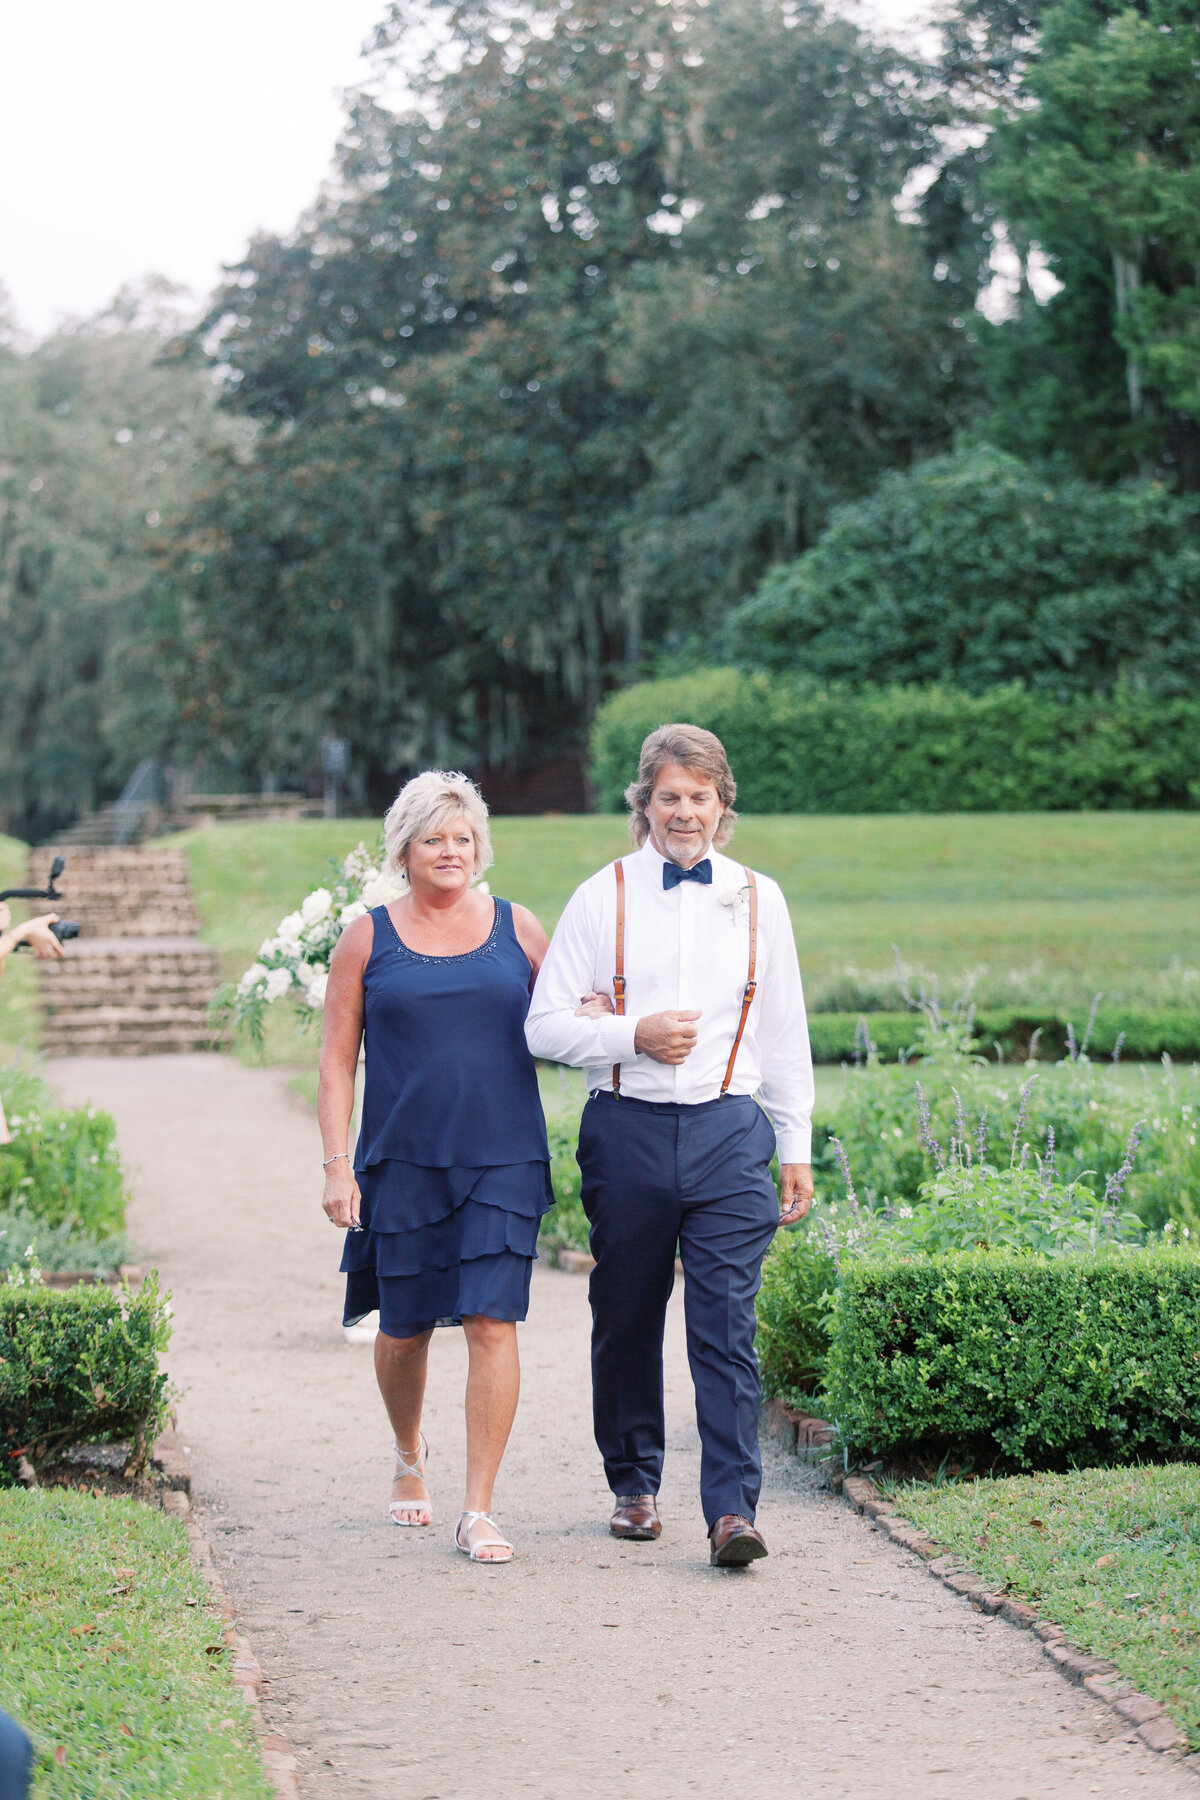 Melton_Wedding__Middleton_Place_Plantation_Charleston_South_Carolina_Jacksonville_Florida_Devon_Donnahoo_Photography__0489